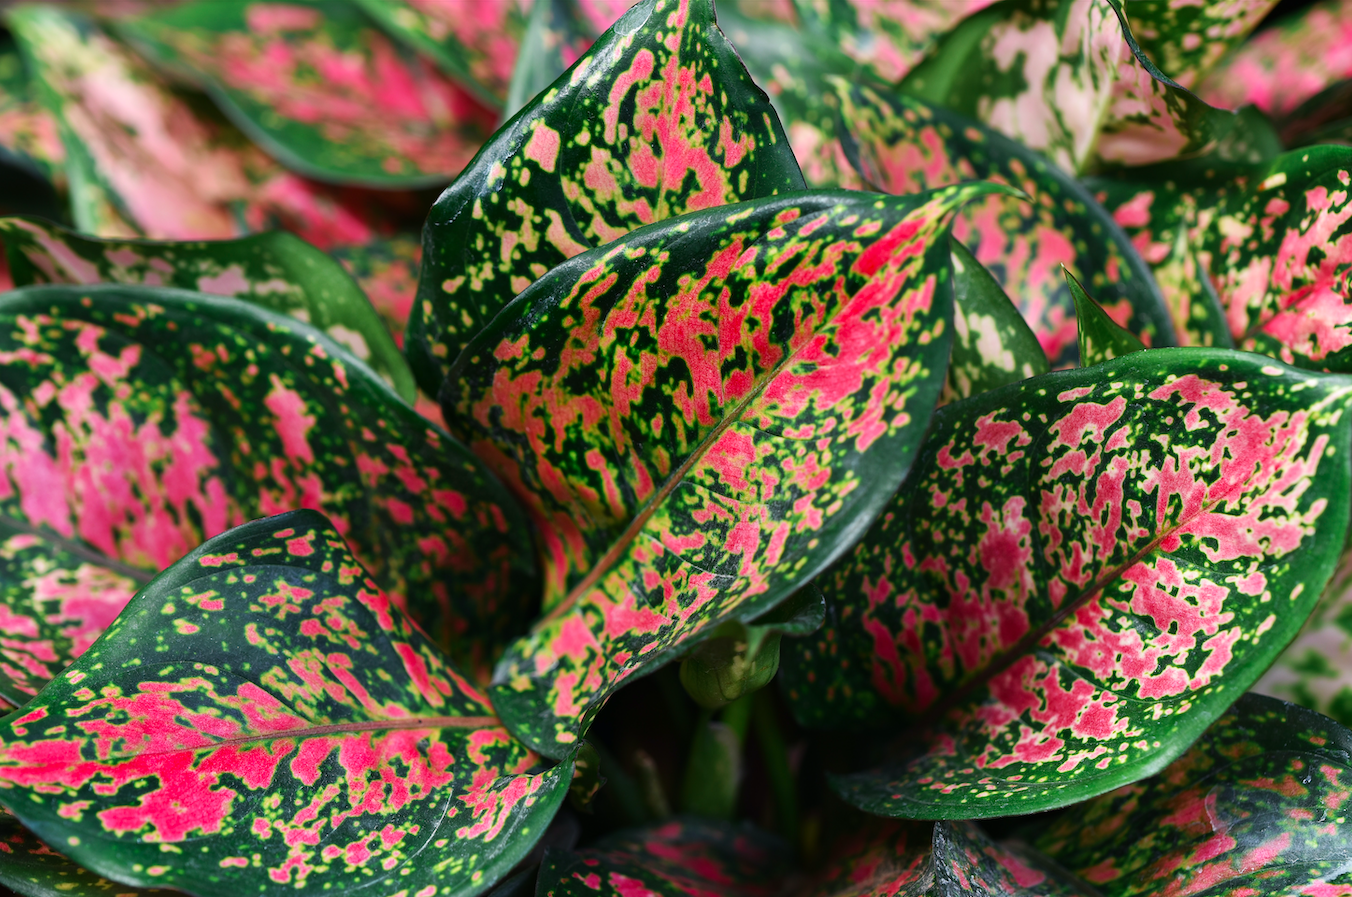 Top 5 Mistakes to Avoid With Indoor Plants